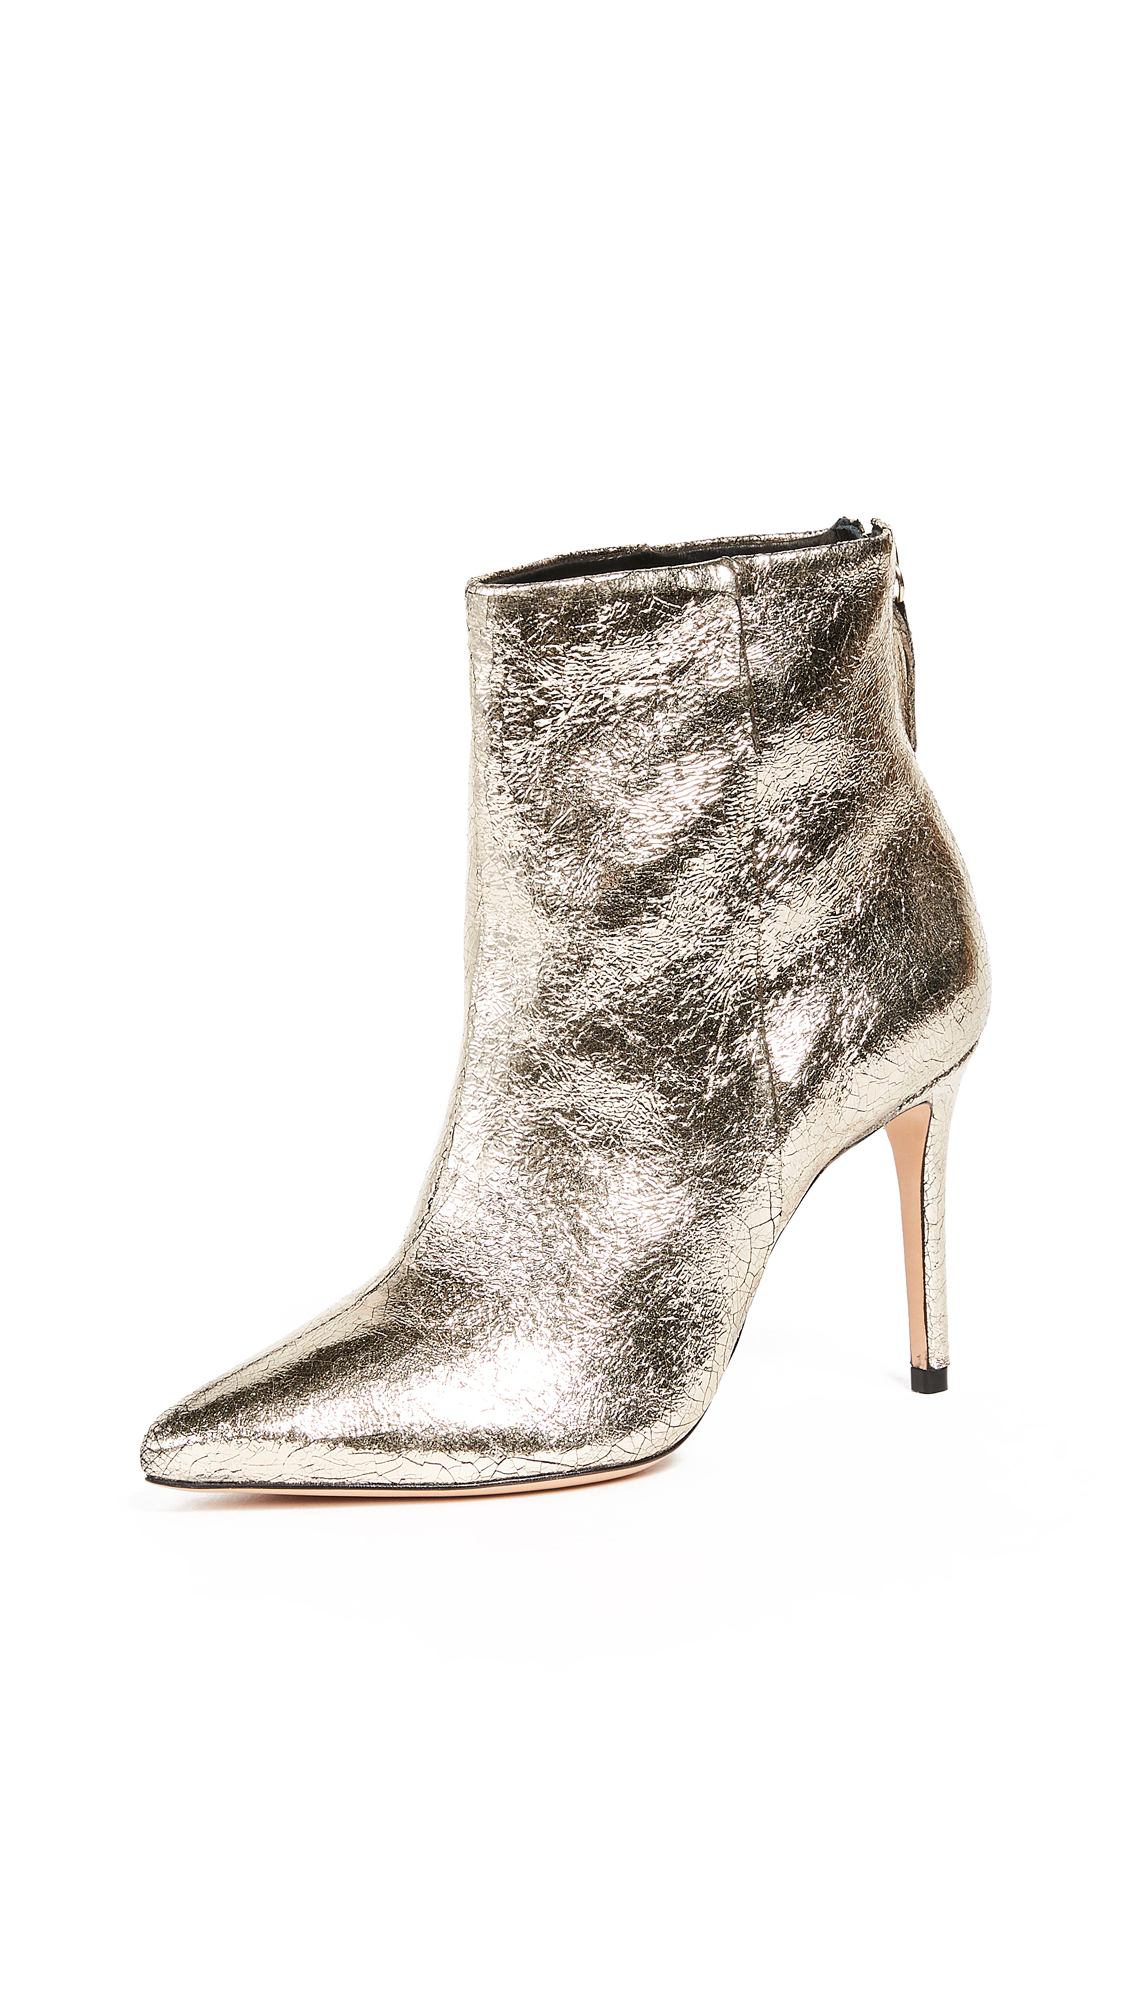 Schutz Ginny Point Toe Ankle Boots - Platina